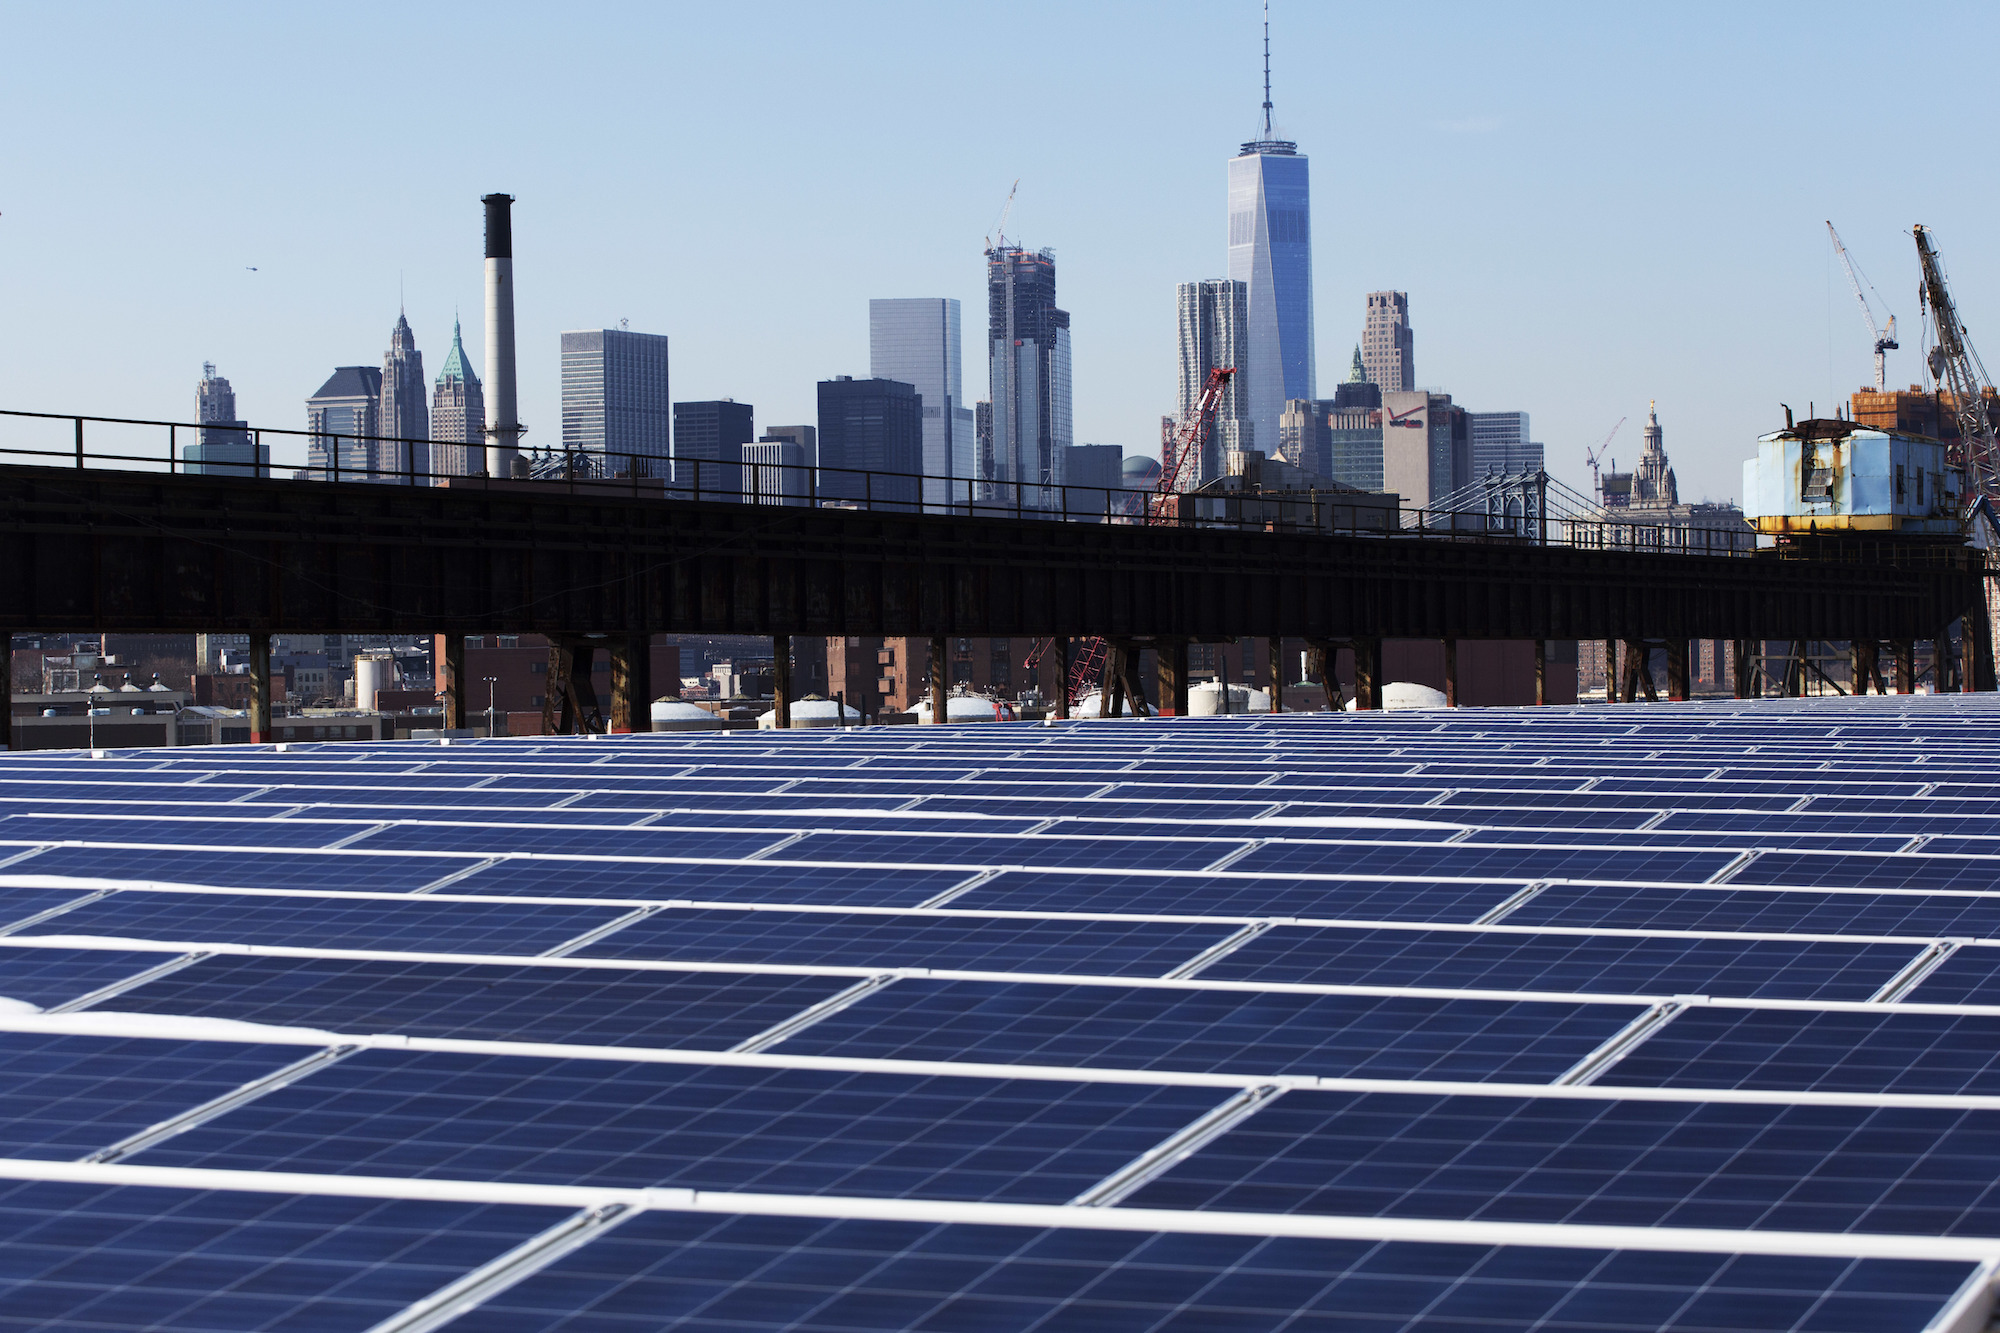 a photo of many rooftop solar panels along the bottom of the image. Above, you can see the Manhattan skyline with man tall skyscrapers.